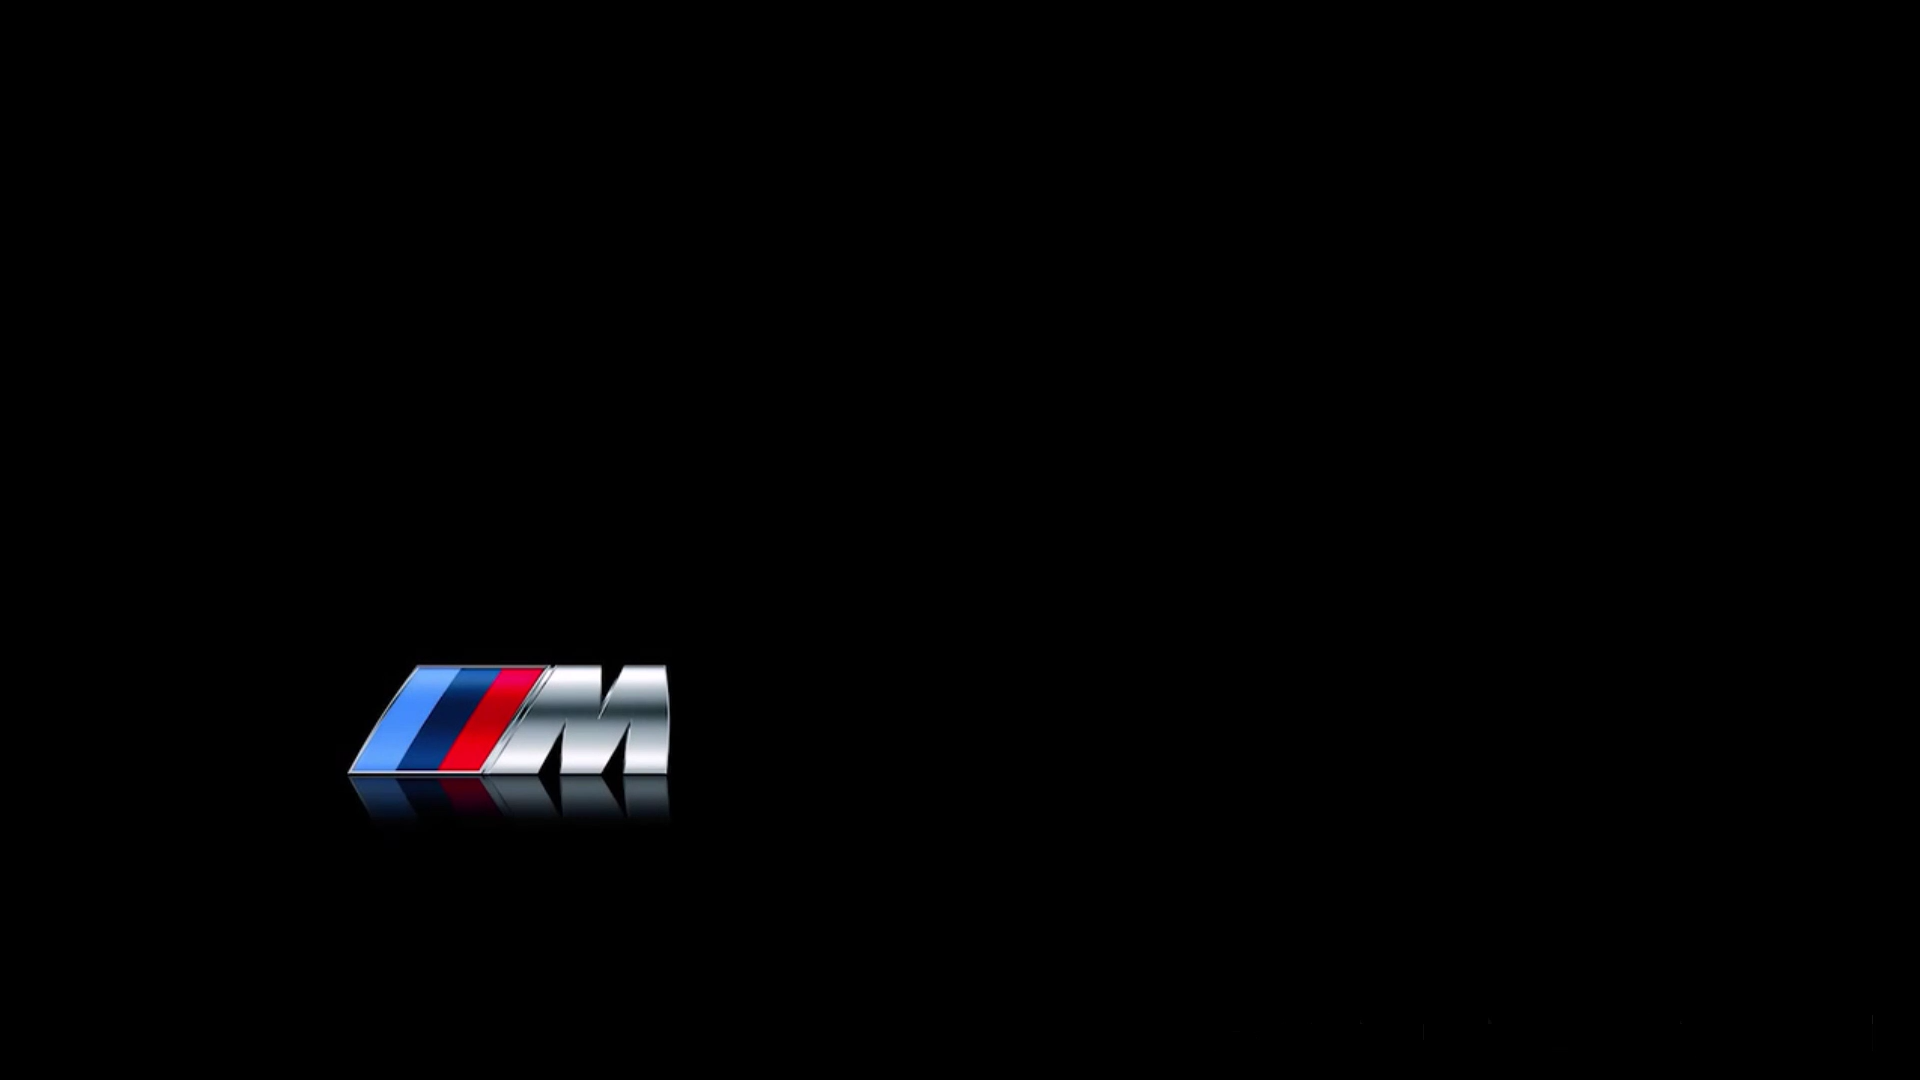 Bmw Logo Background Posted By Ethan Sellers